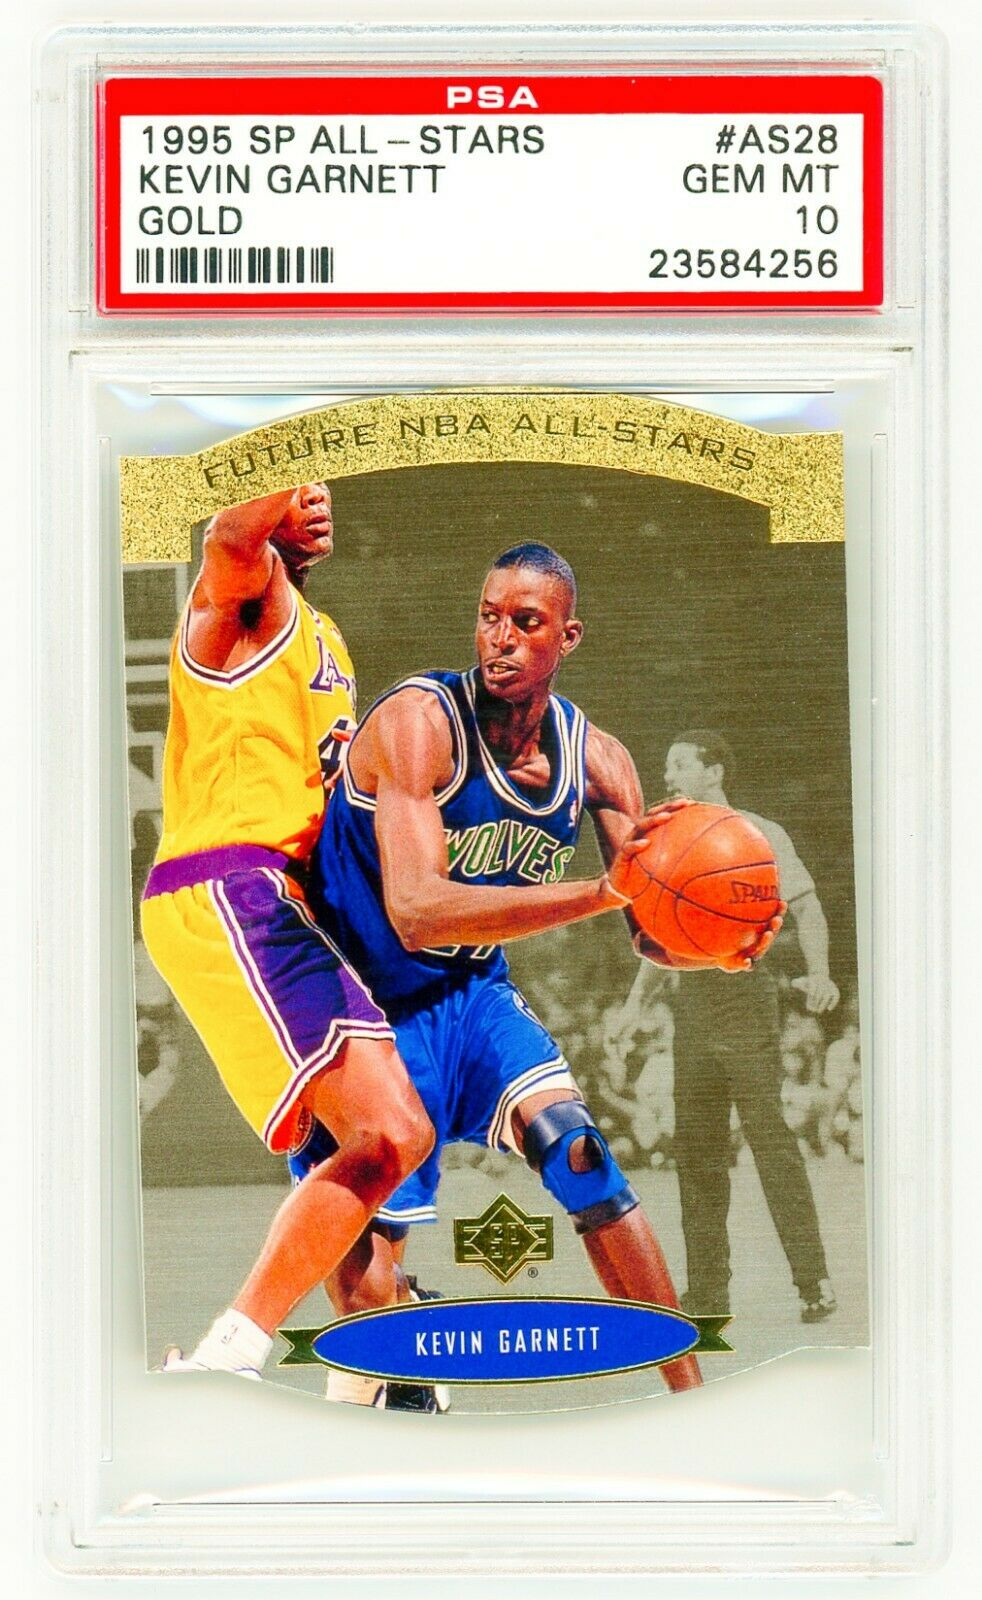 KEVIN GARNETT 1995 Upper Deck SP ALL-STAR AS28 GOLD PSA 10 ROOKIE CARD